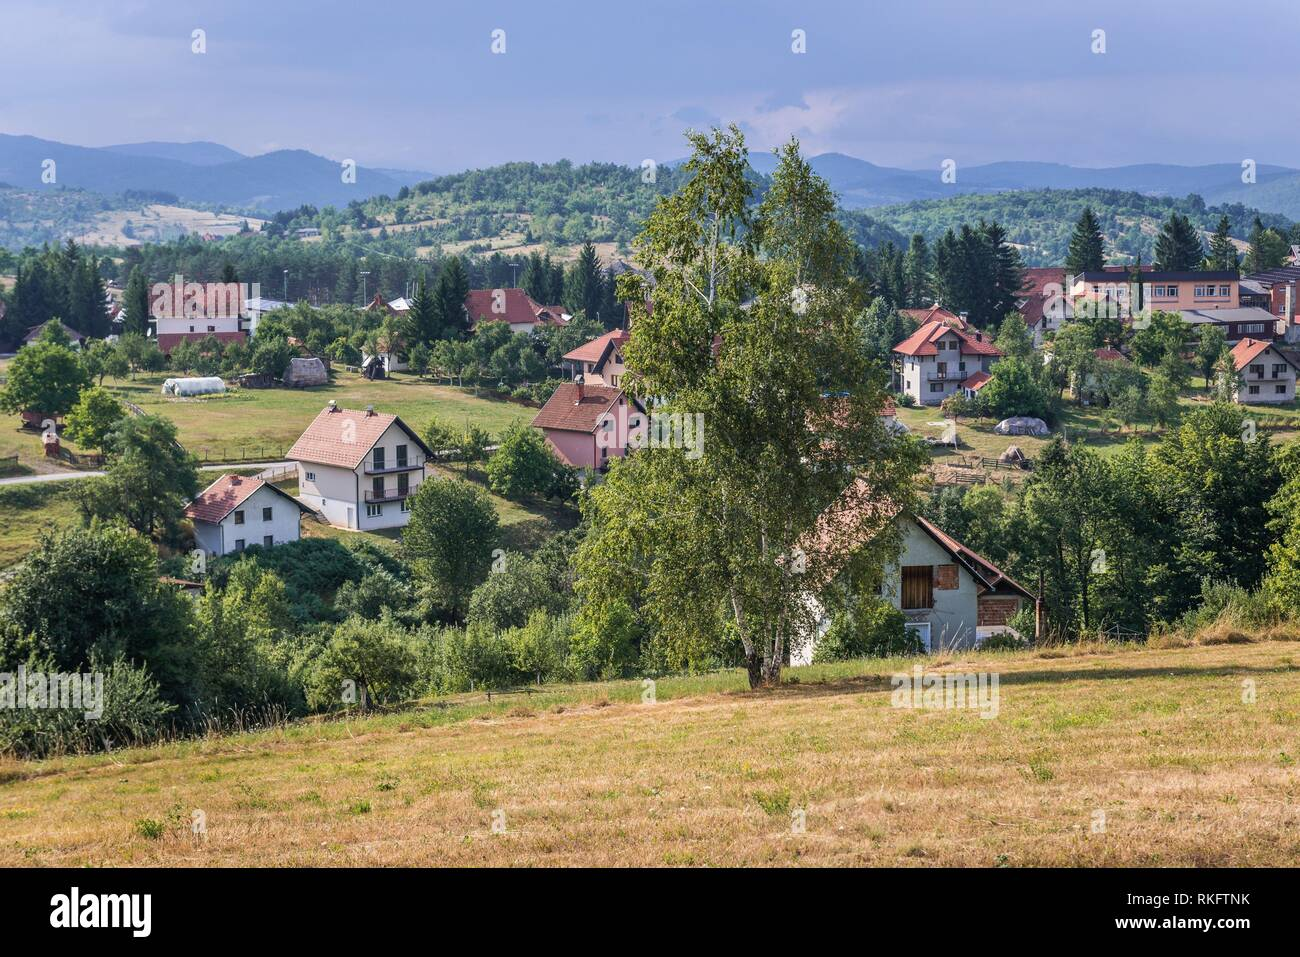 Aerial view of Sirogojno village in Zlatibor mountainous region in western part of Serbia. - Stock Image